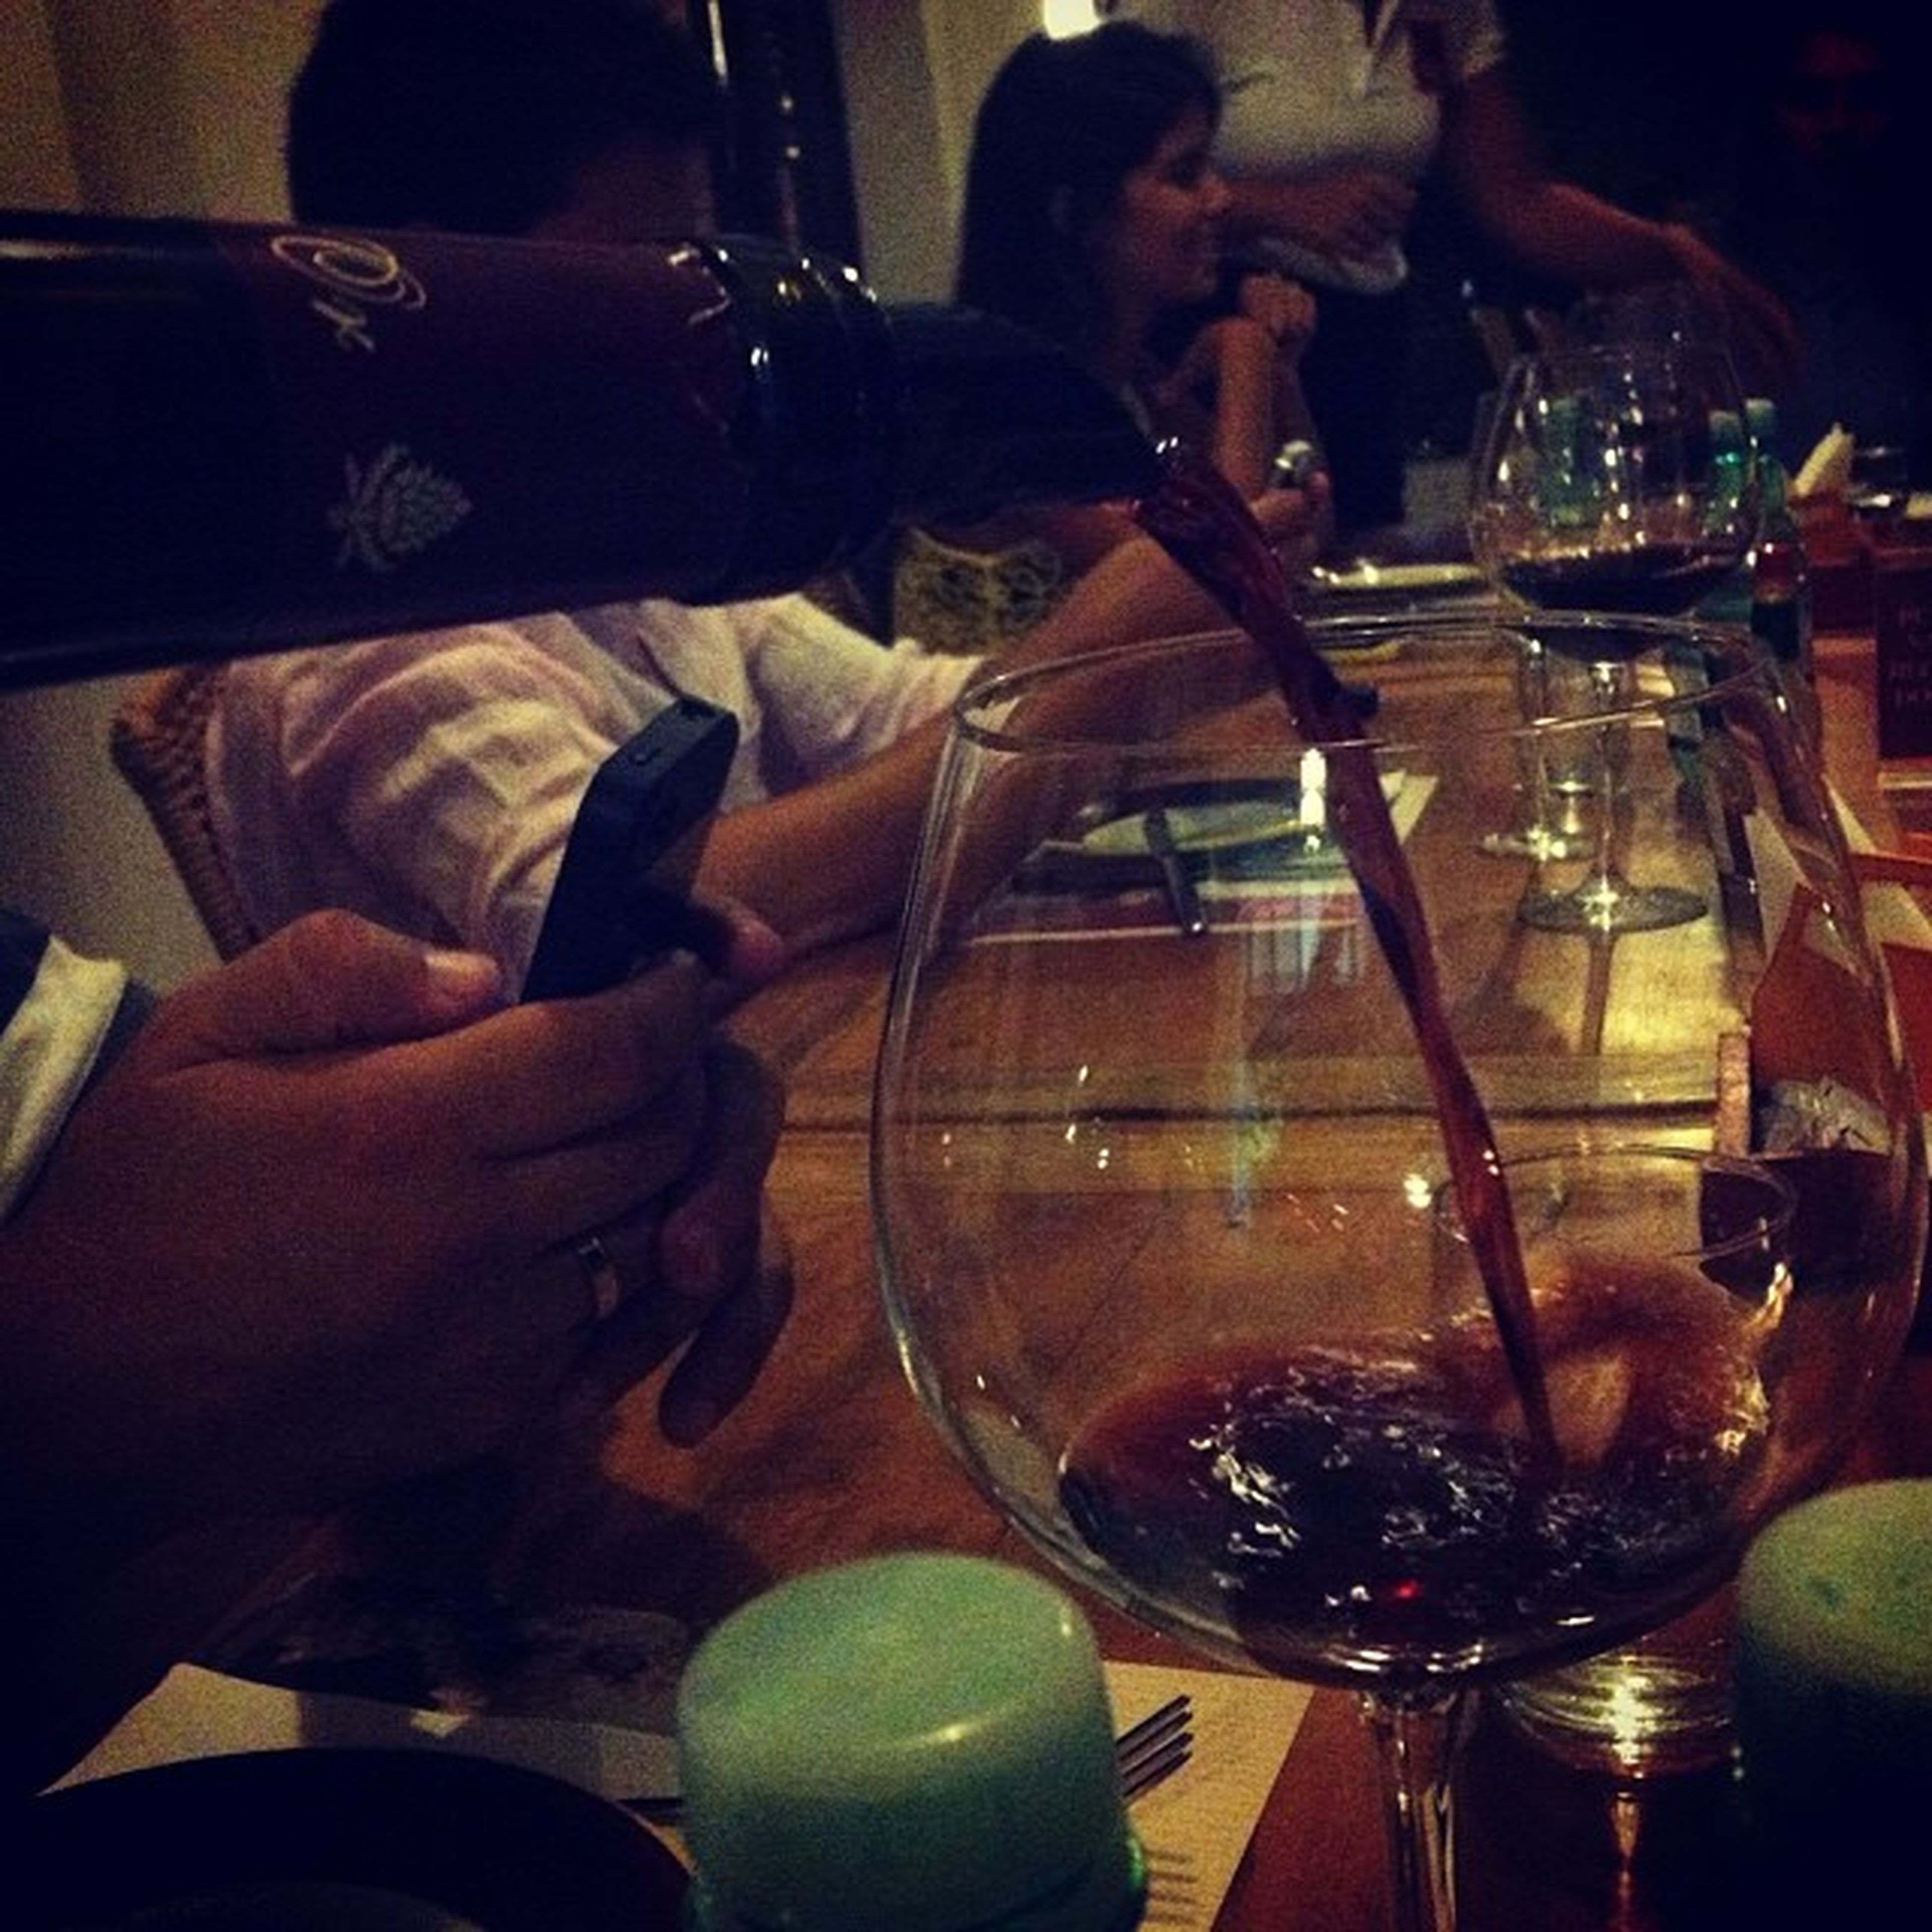 indoors, drinking glass, food and drink, drink, glass - material, table, alcohol, wineglass, refreshment, transparent, wine, reflection, restaurant, close-up, freshness, red wine, glass, wine glass